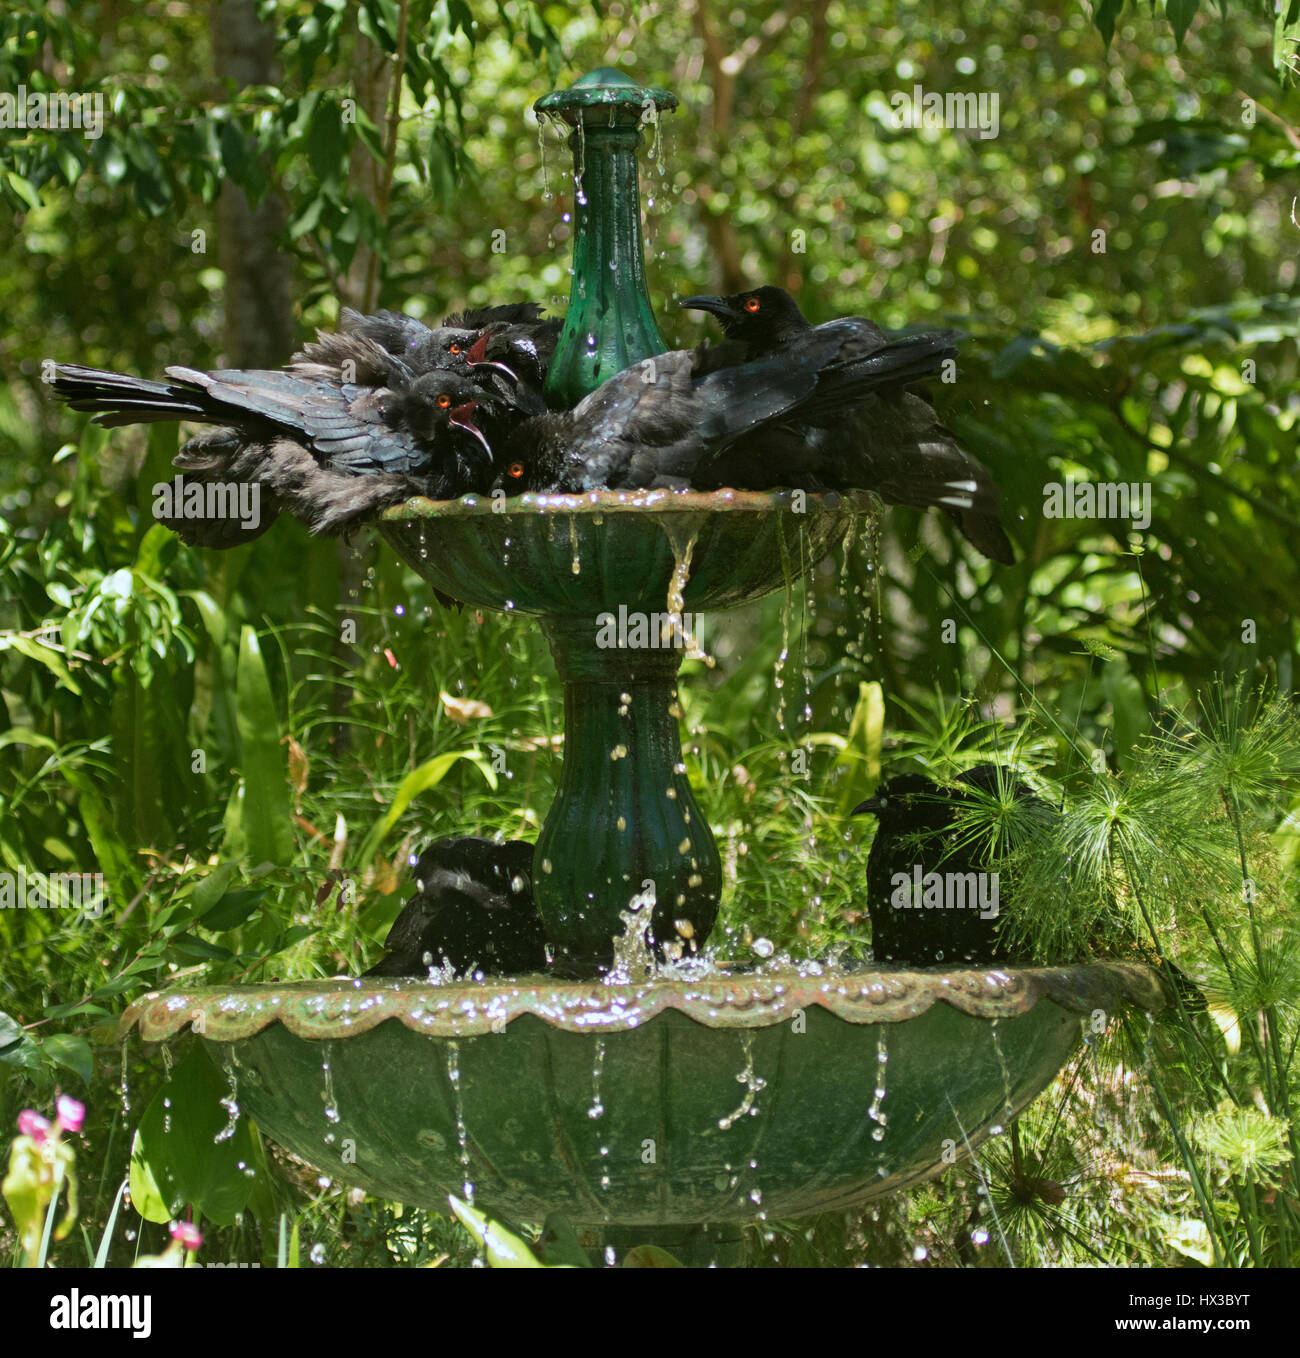 Humorous view of family of white-winged choughs Corcorax melanorhamphos cooling off in running water of garden fountain - Stock Image